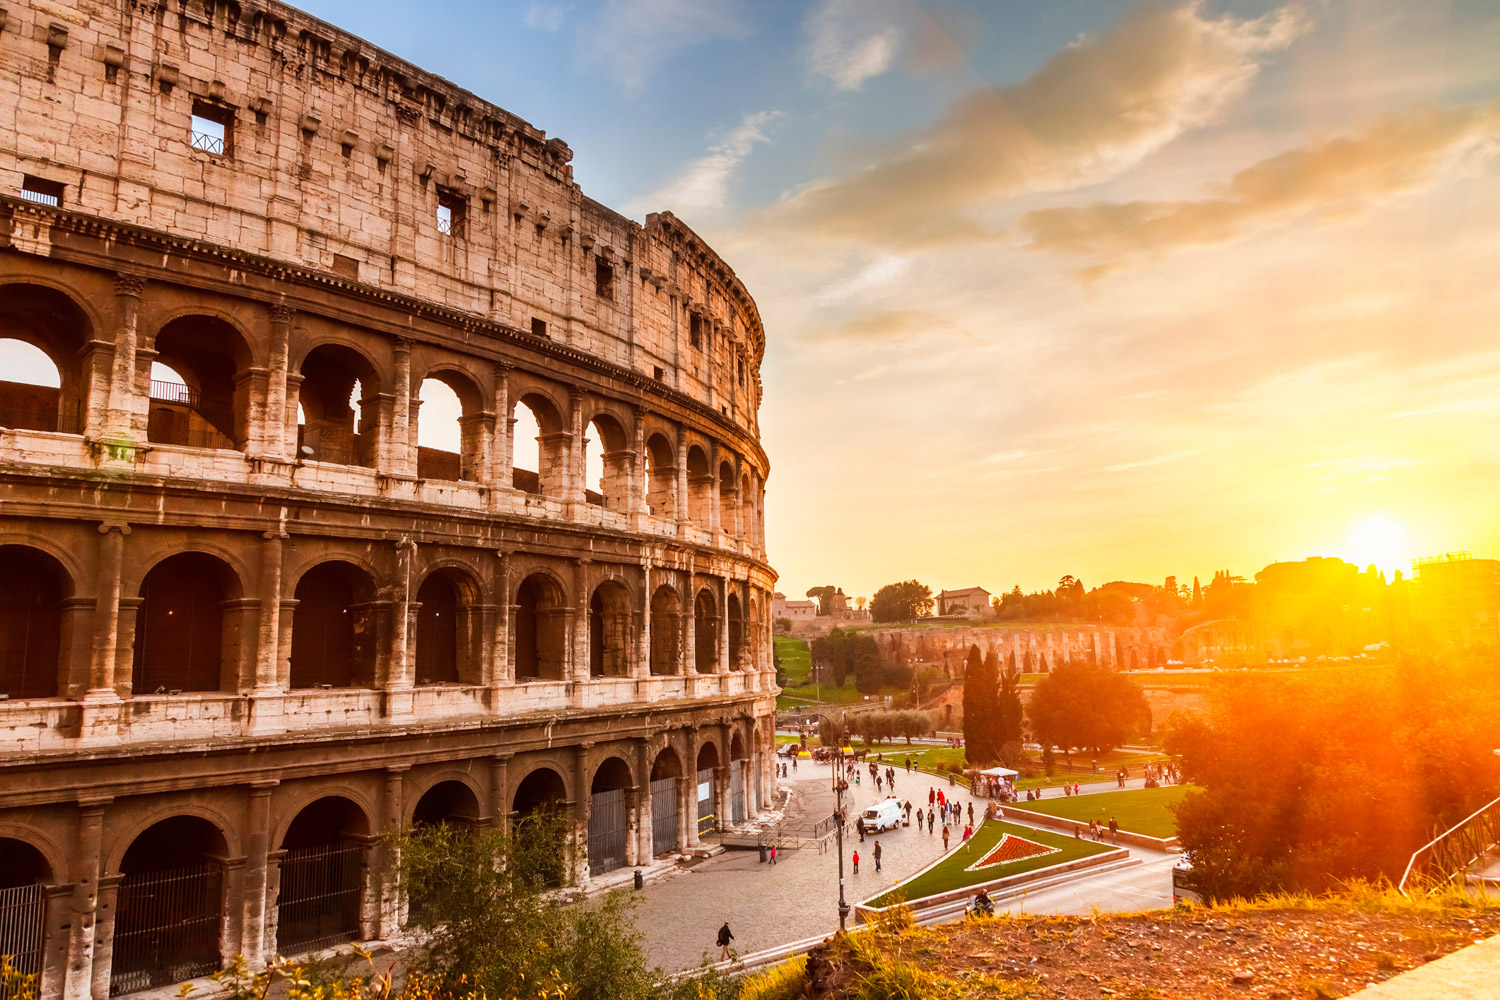 The top European destinations for Delta Vacations romance program are Paris, Venice and Rome (pictured).